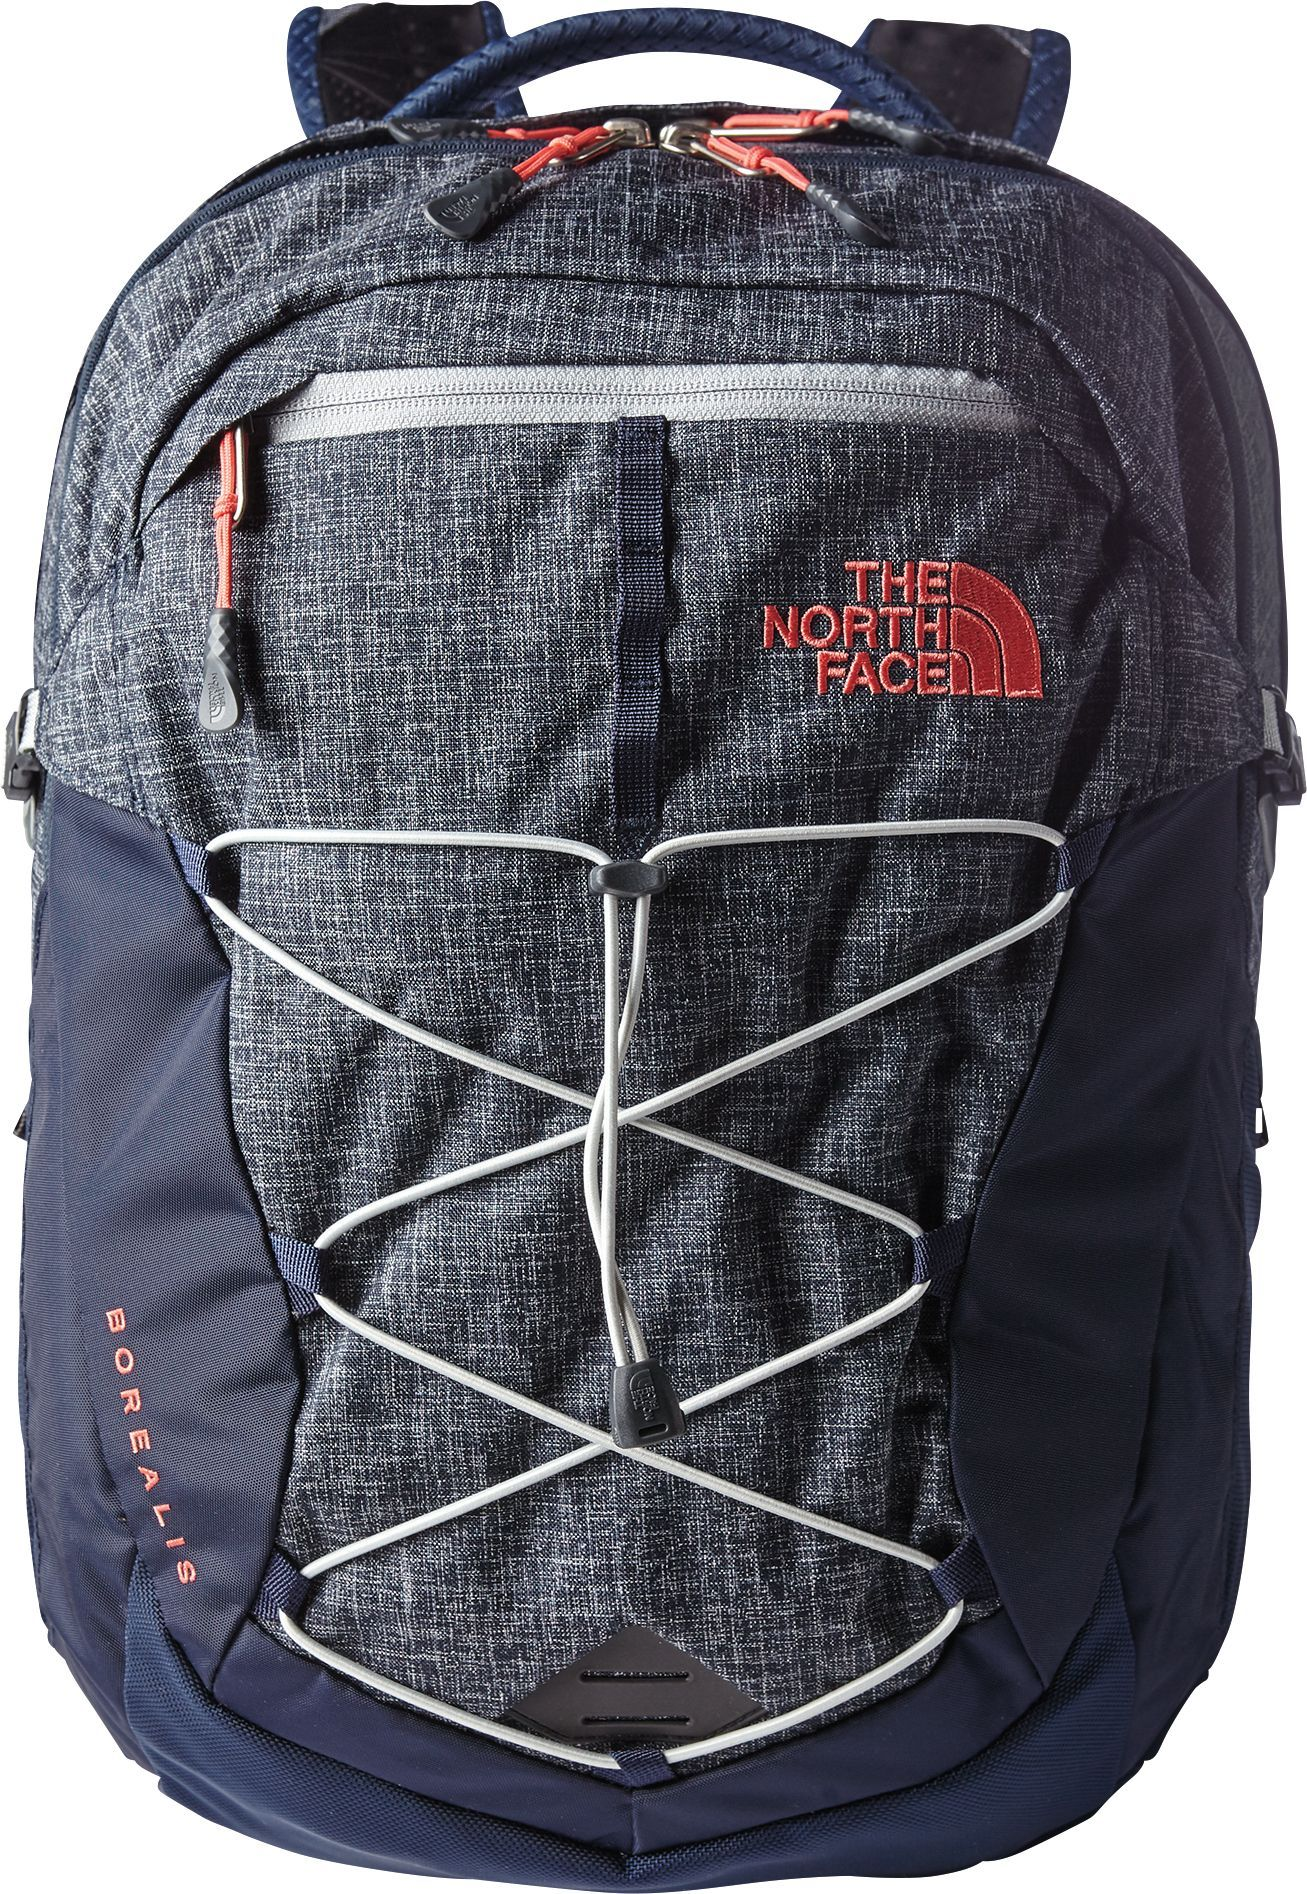 32d3b668c05 The North Face Women's Borealis Backpack | DICK'S Sporting ...